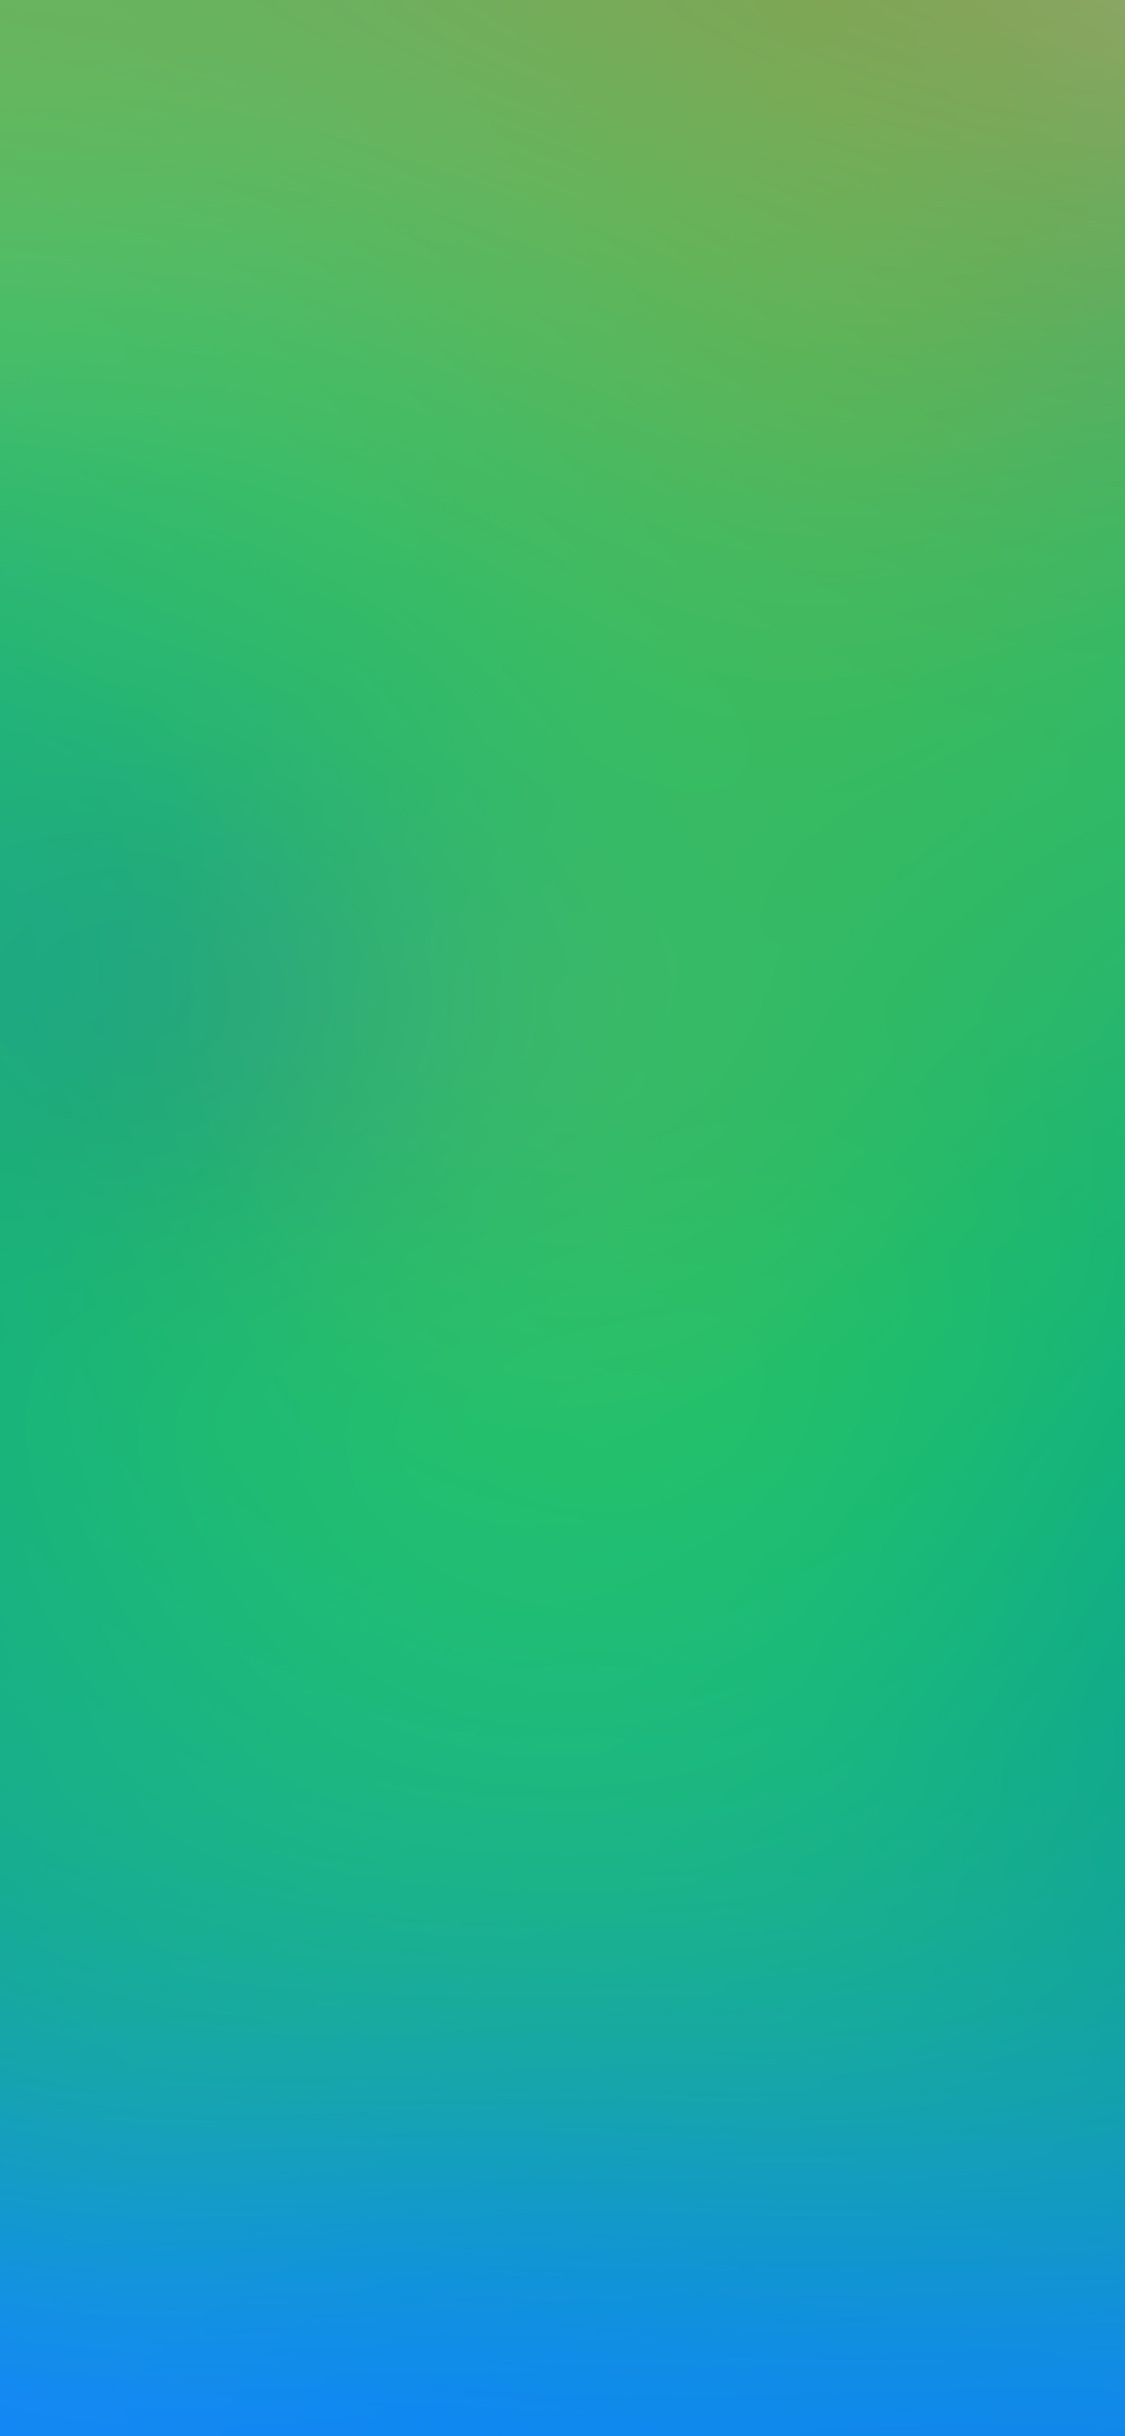 iPhoneXpapers.com-Apple-iPhone-wallpaper-sk28-blue-green-energy-blur-gradation